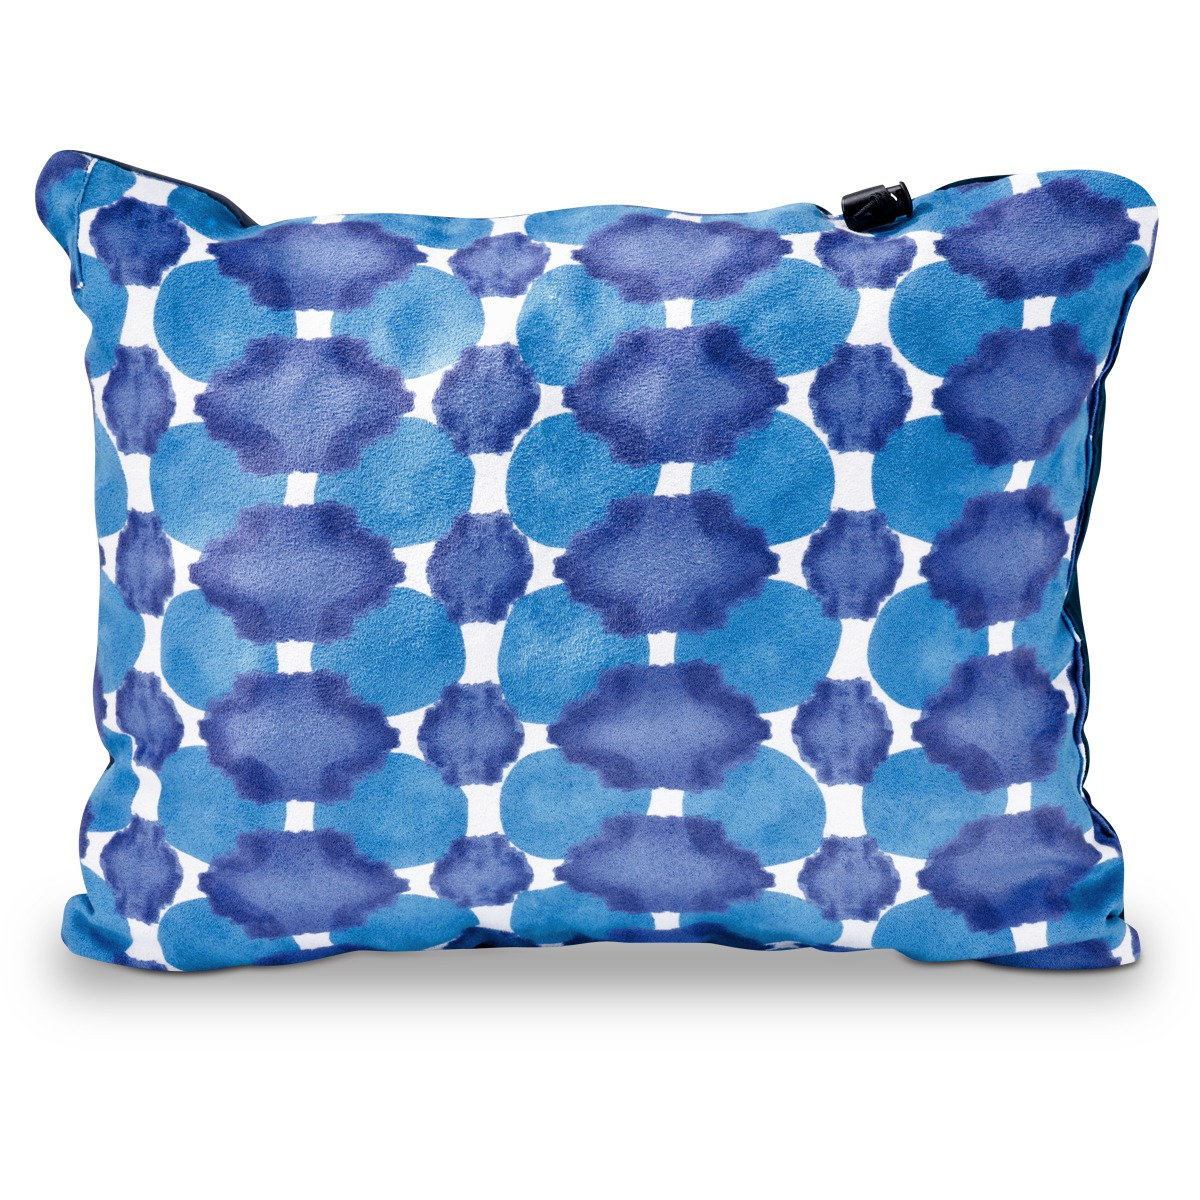 Therm-A-Rest Compressible Pillow XL Indigo Dot-30